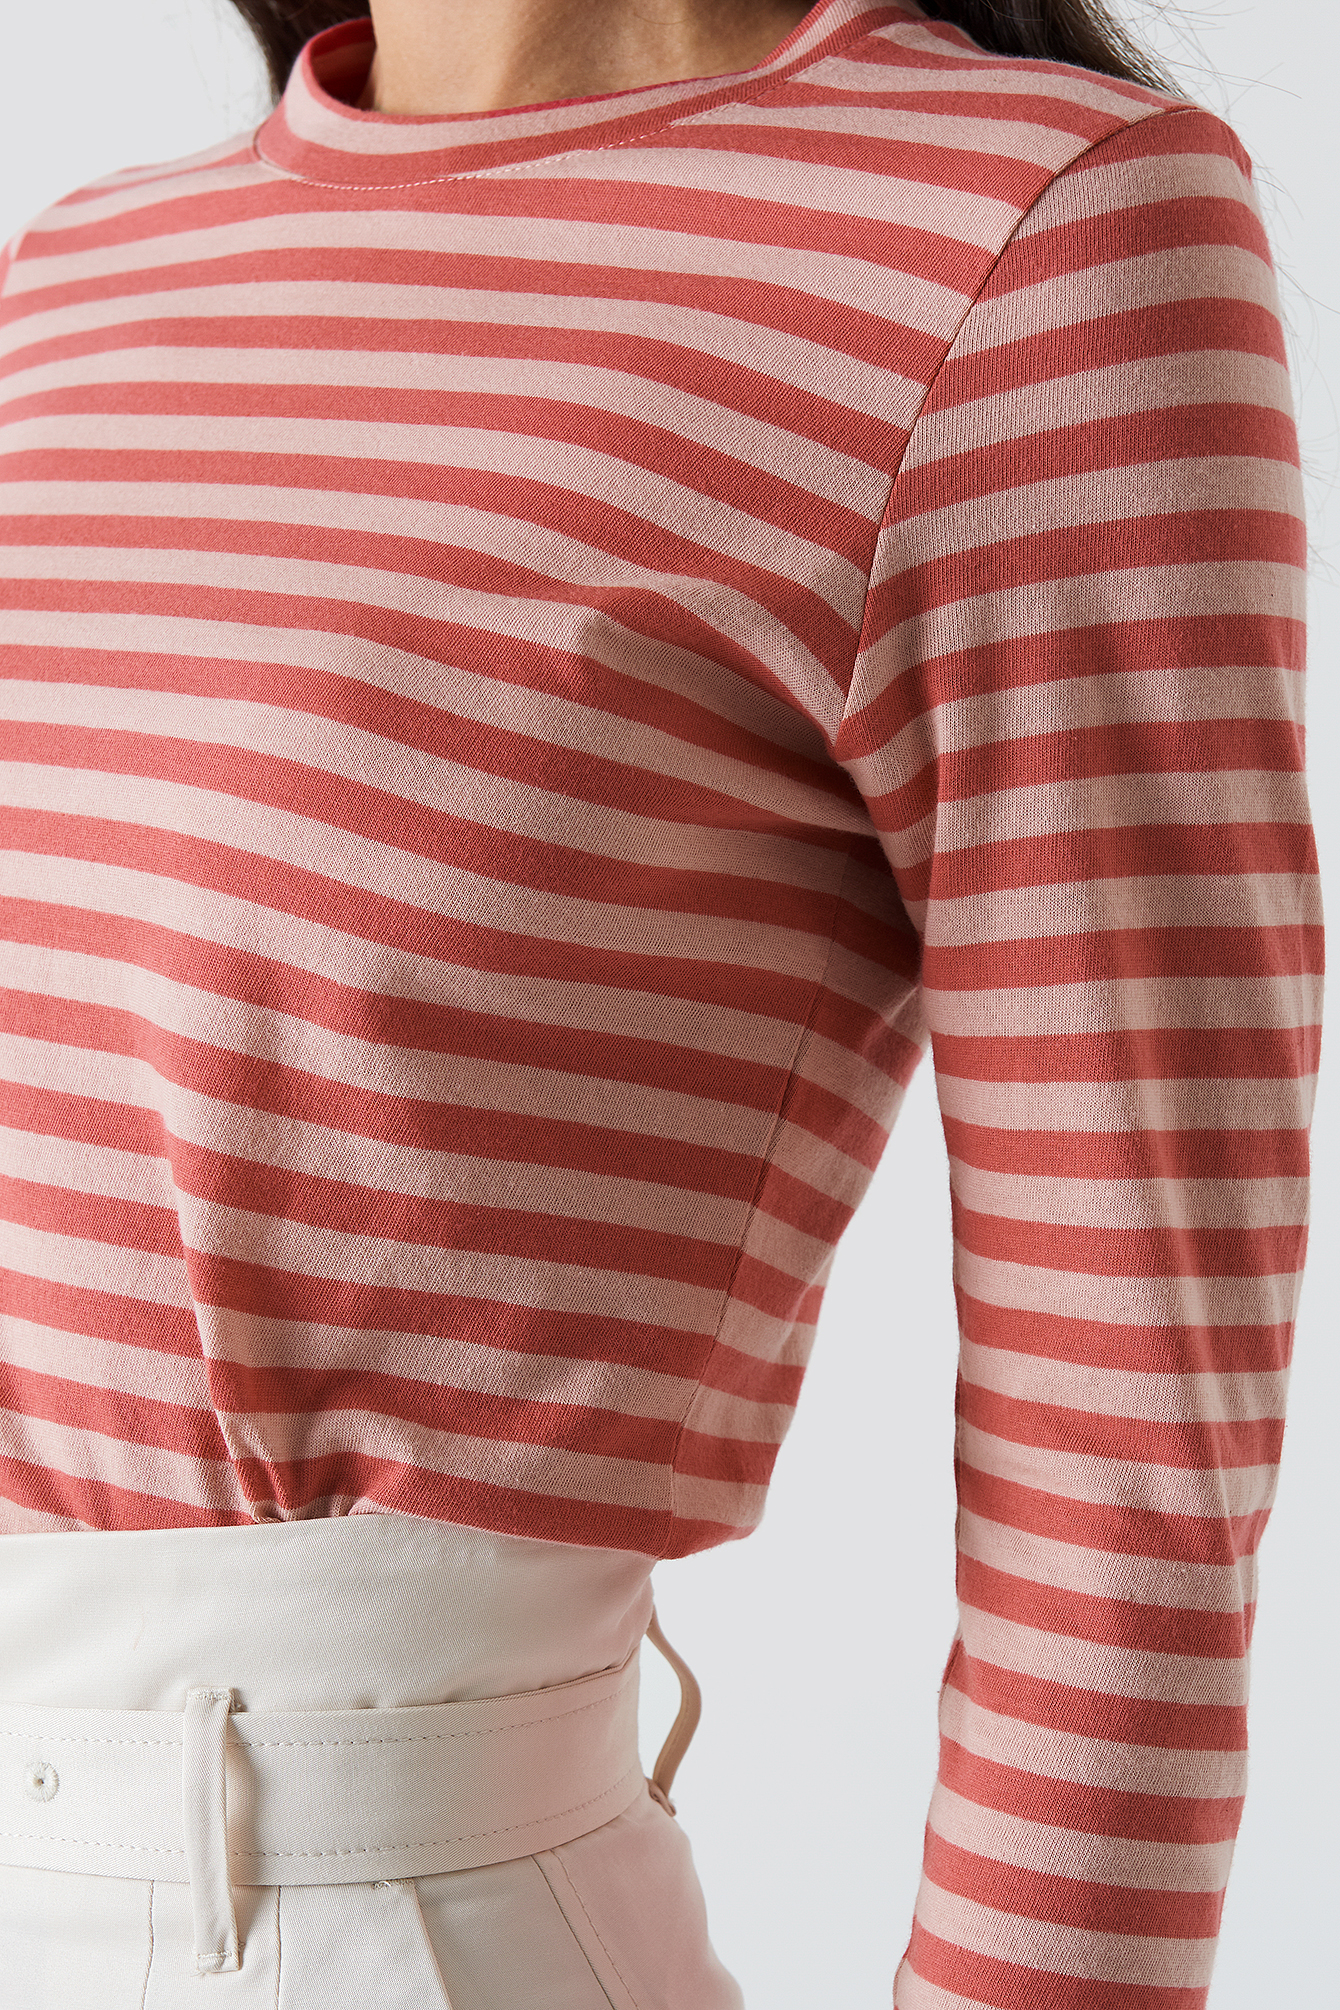 Pink/Red Striped Long Sleeve Top